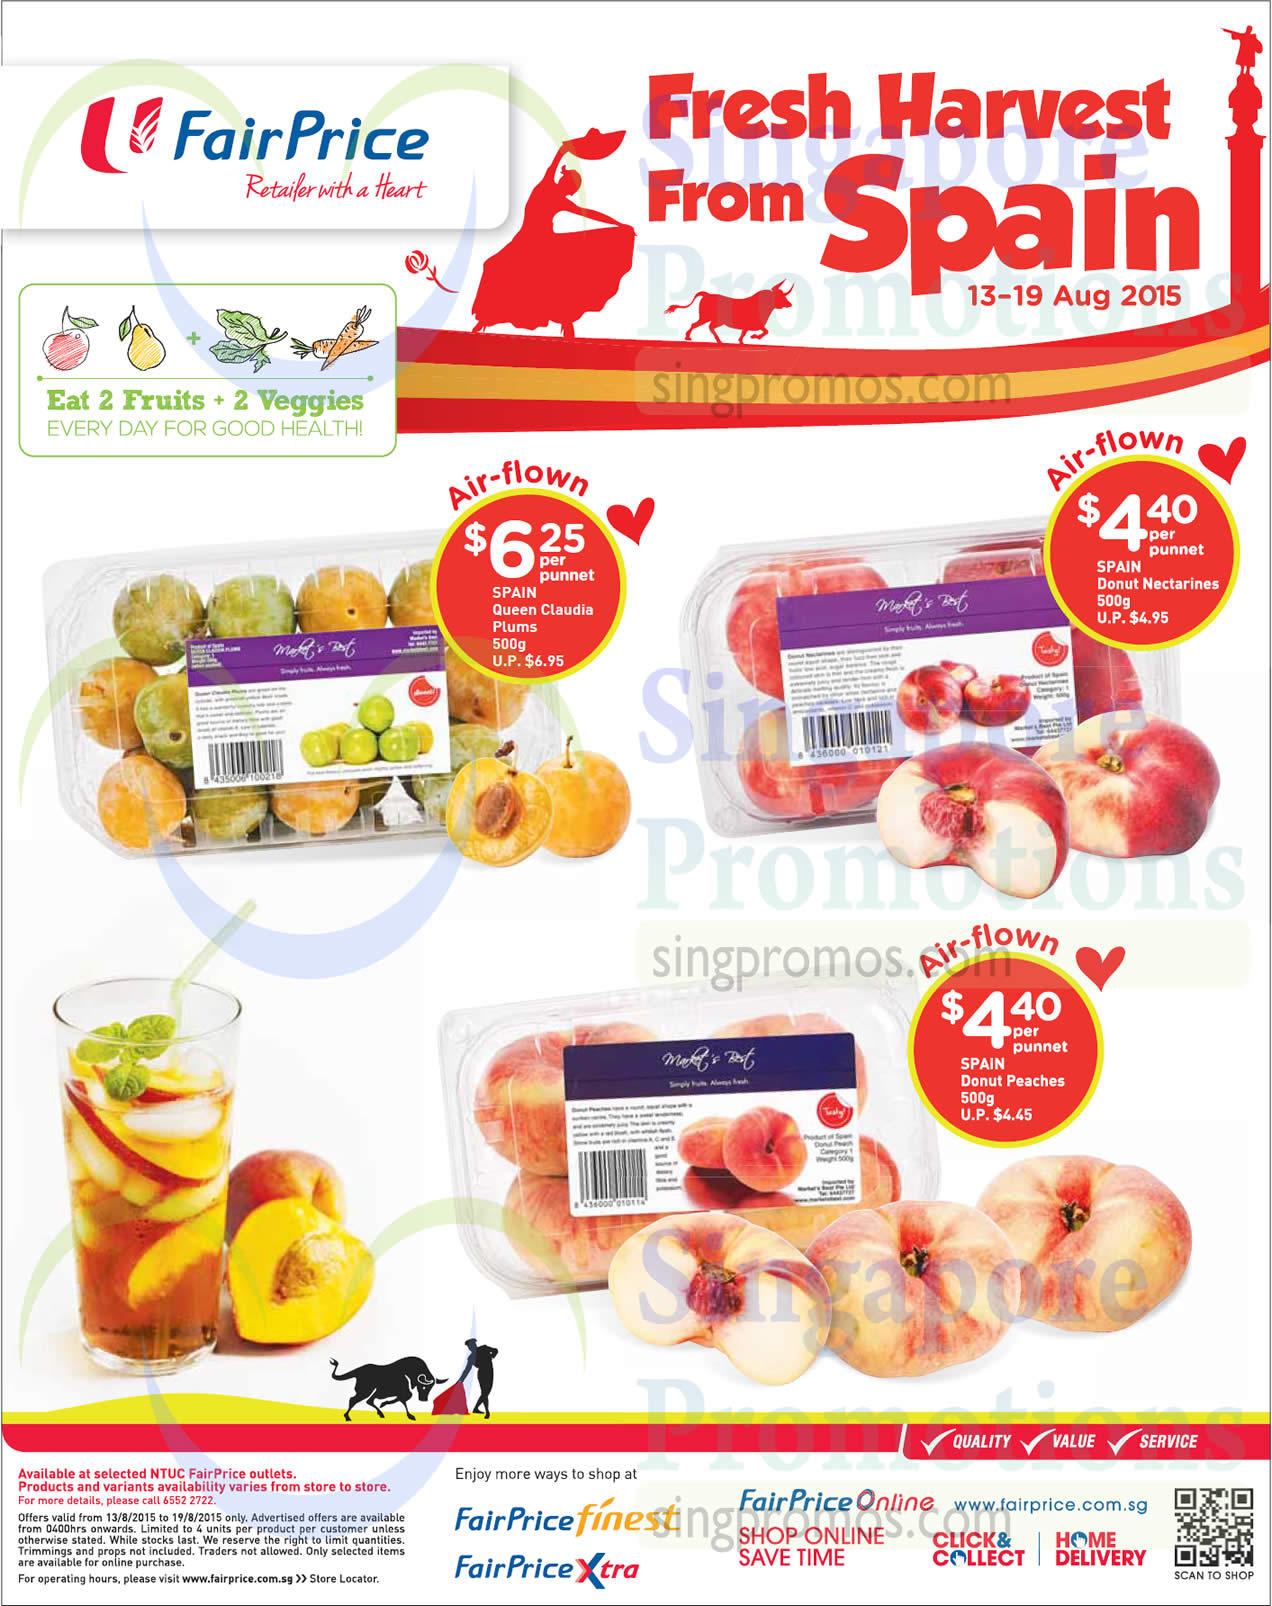 online purchases and delivery service in ntuc fairprice essay